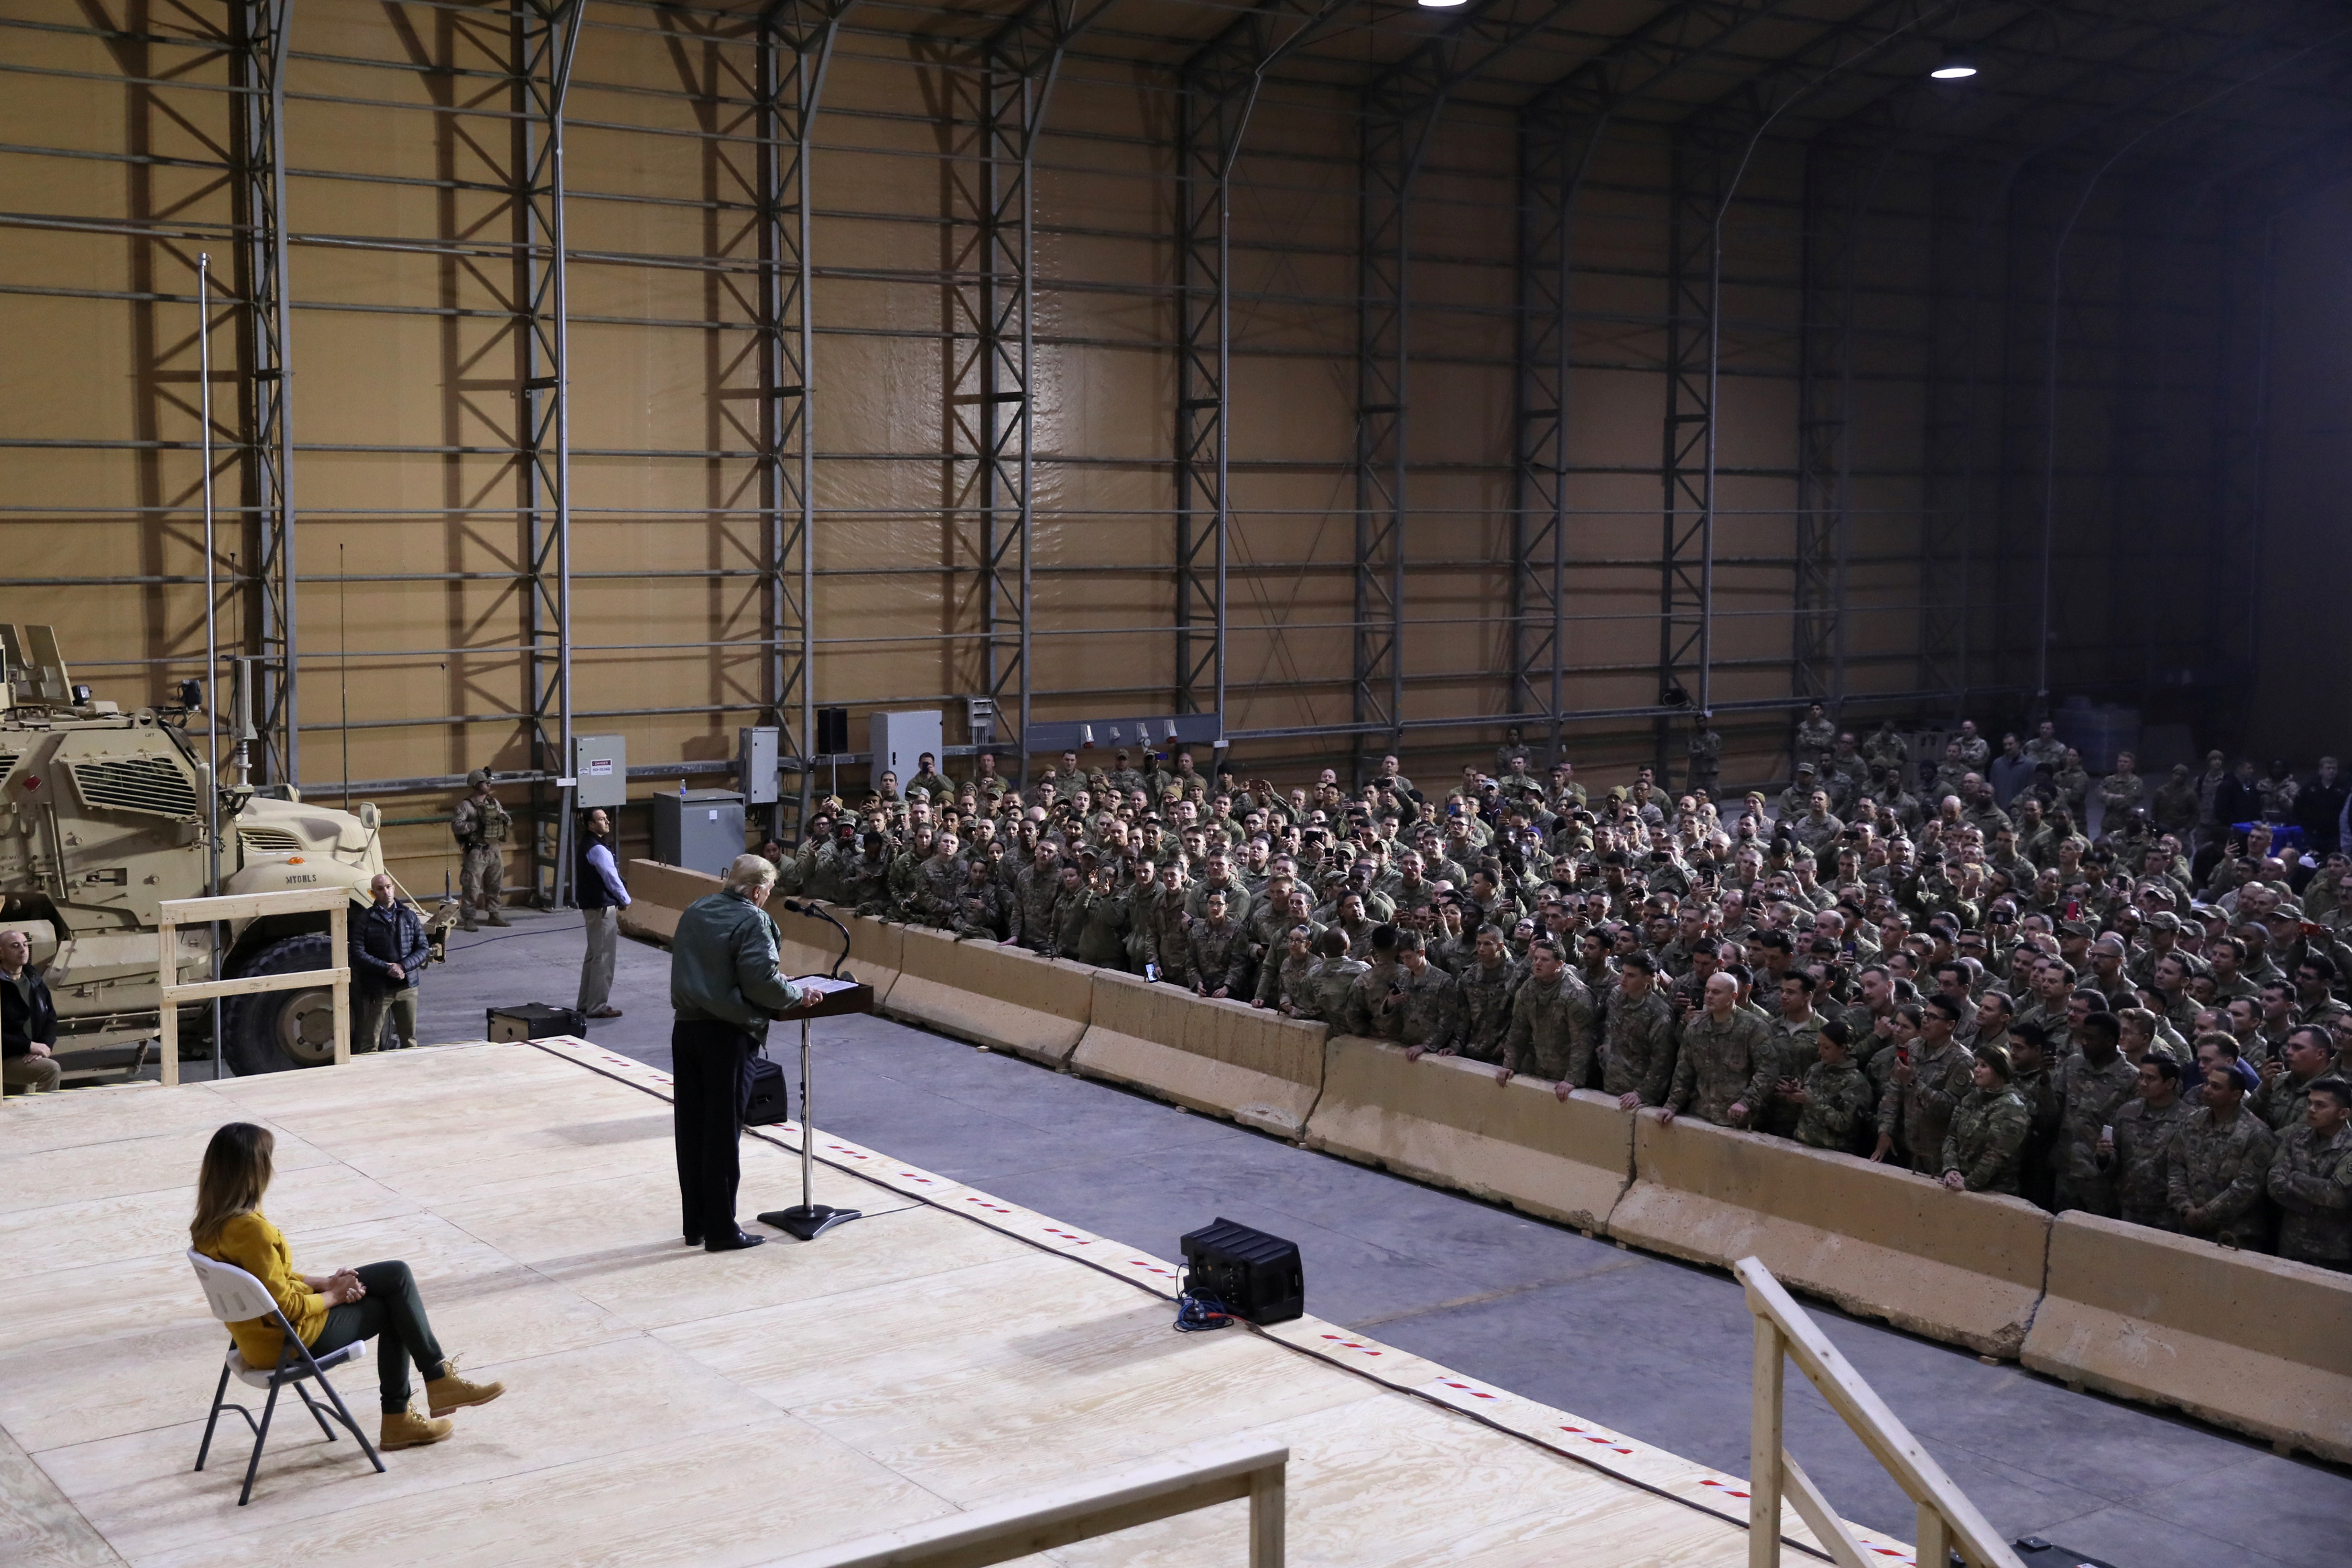 U.S. President Donald Trump delivers remarks to U.S. troops in an unannounced visit to Al Asad Air Base, Iraq December 26, 2018. REUTERS/Jonathan Ernst - RC1801320710